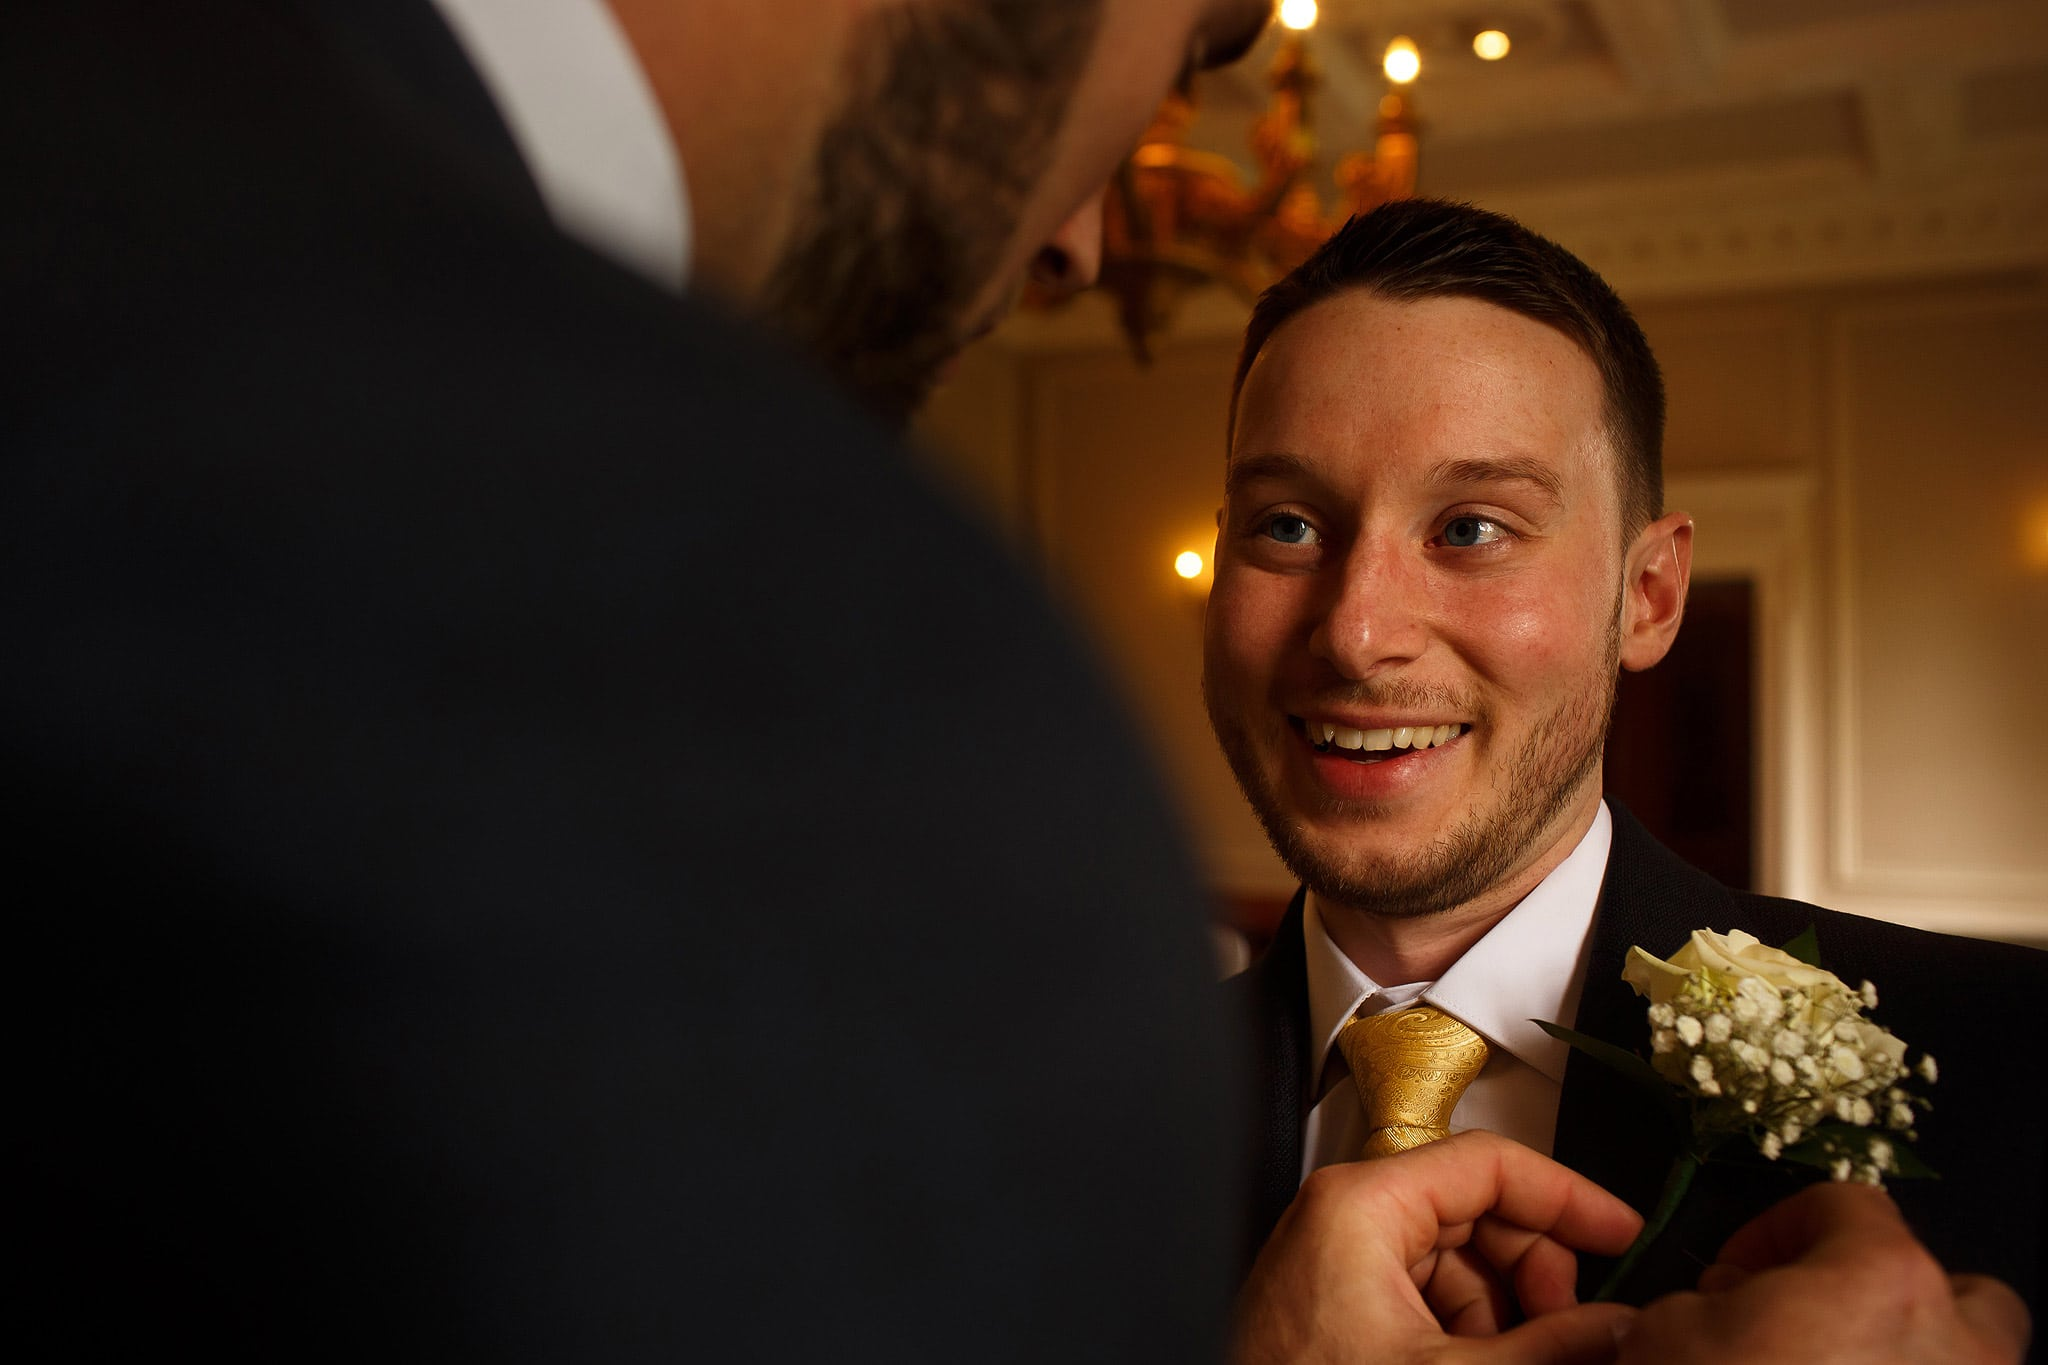 Groom laughing wearing mustard tie as he has button hole pinned